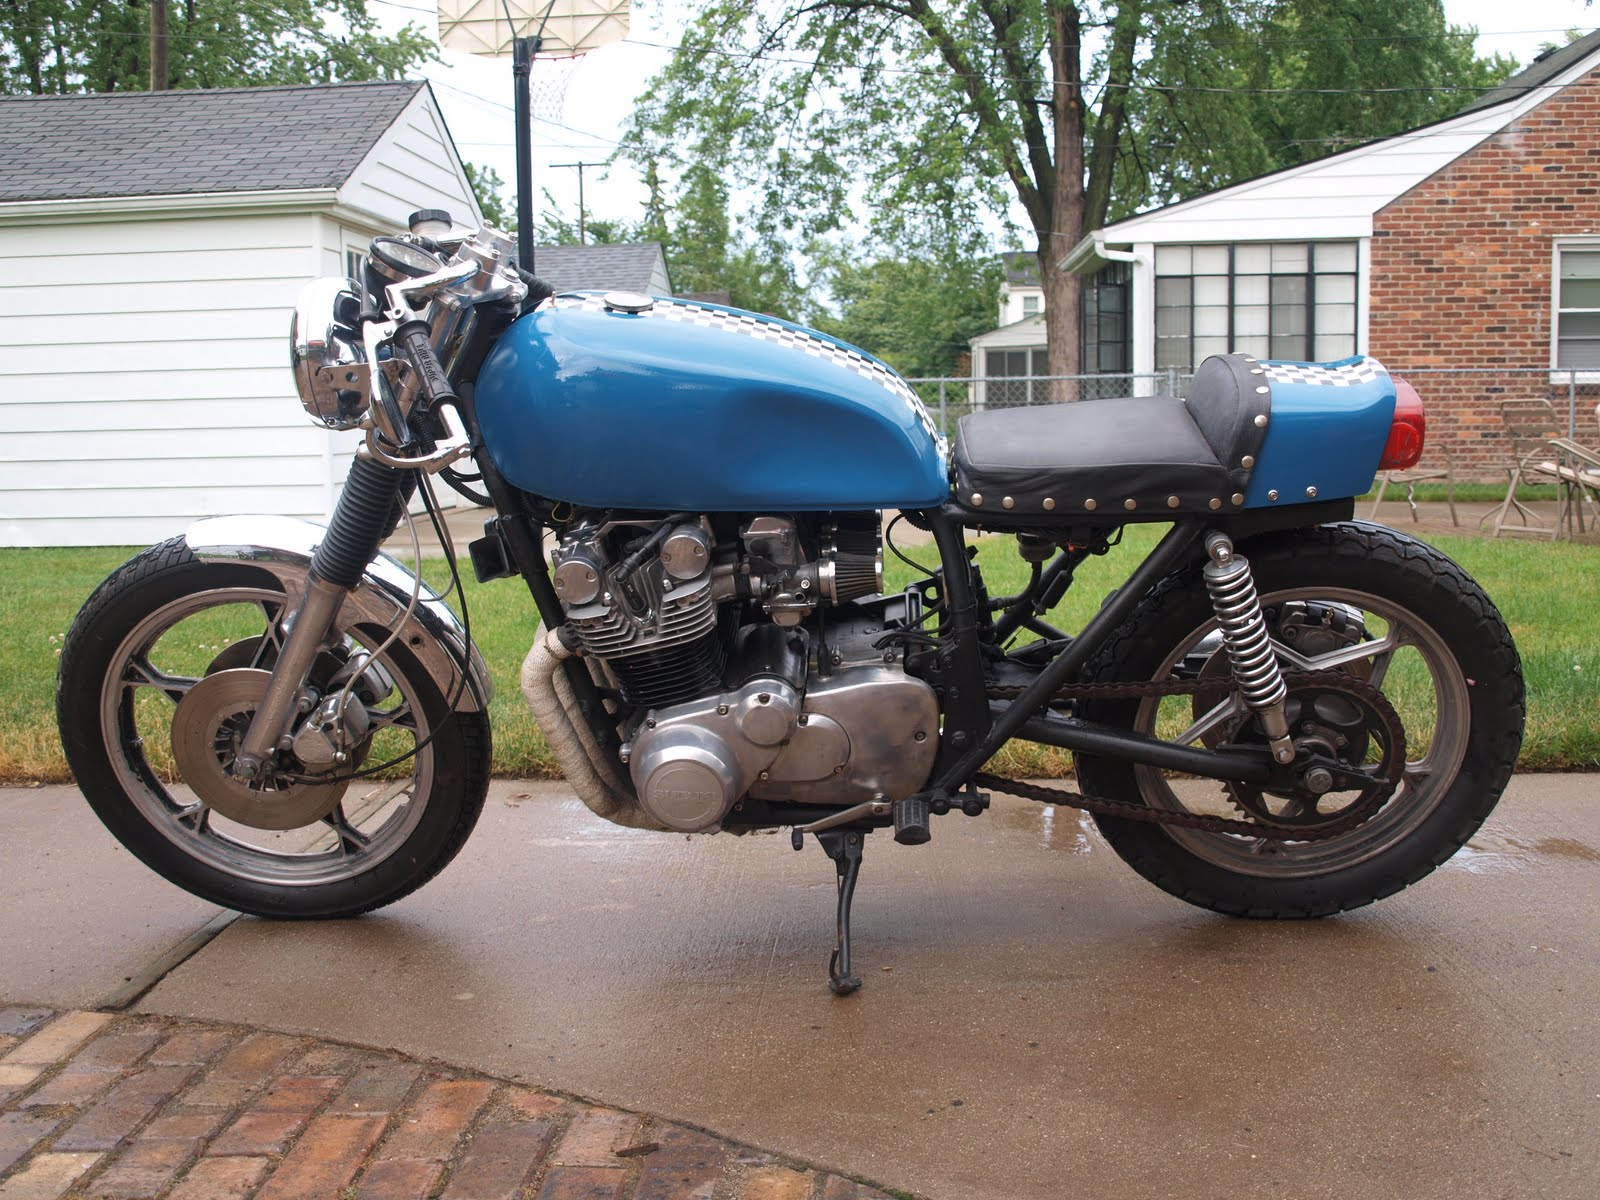 Build Shit Dude Suzuki Gs750 Cafe Mad Max Engine Diagram Also My Mother Made Me A Leather Seat Which I Love It Is The First Peace Of Work Done On Bike That Wasnt Performed By